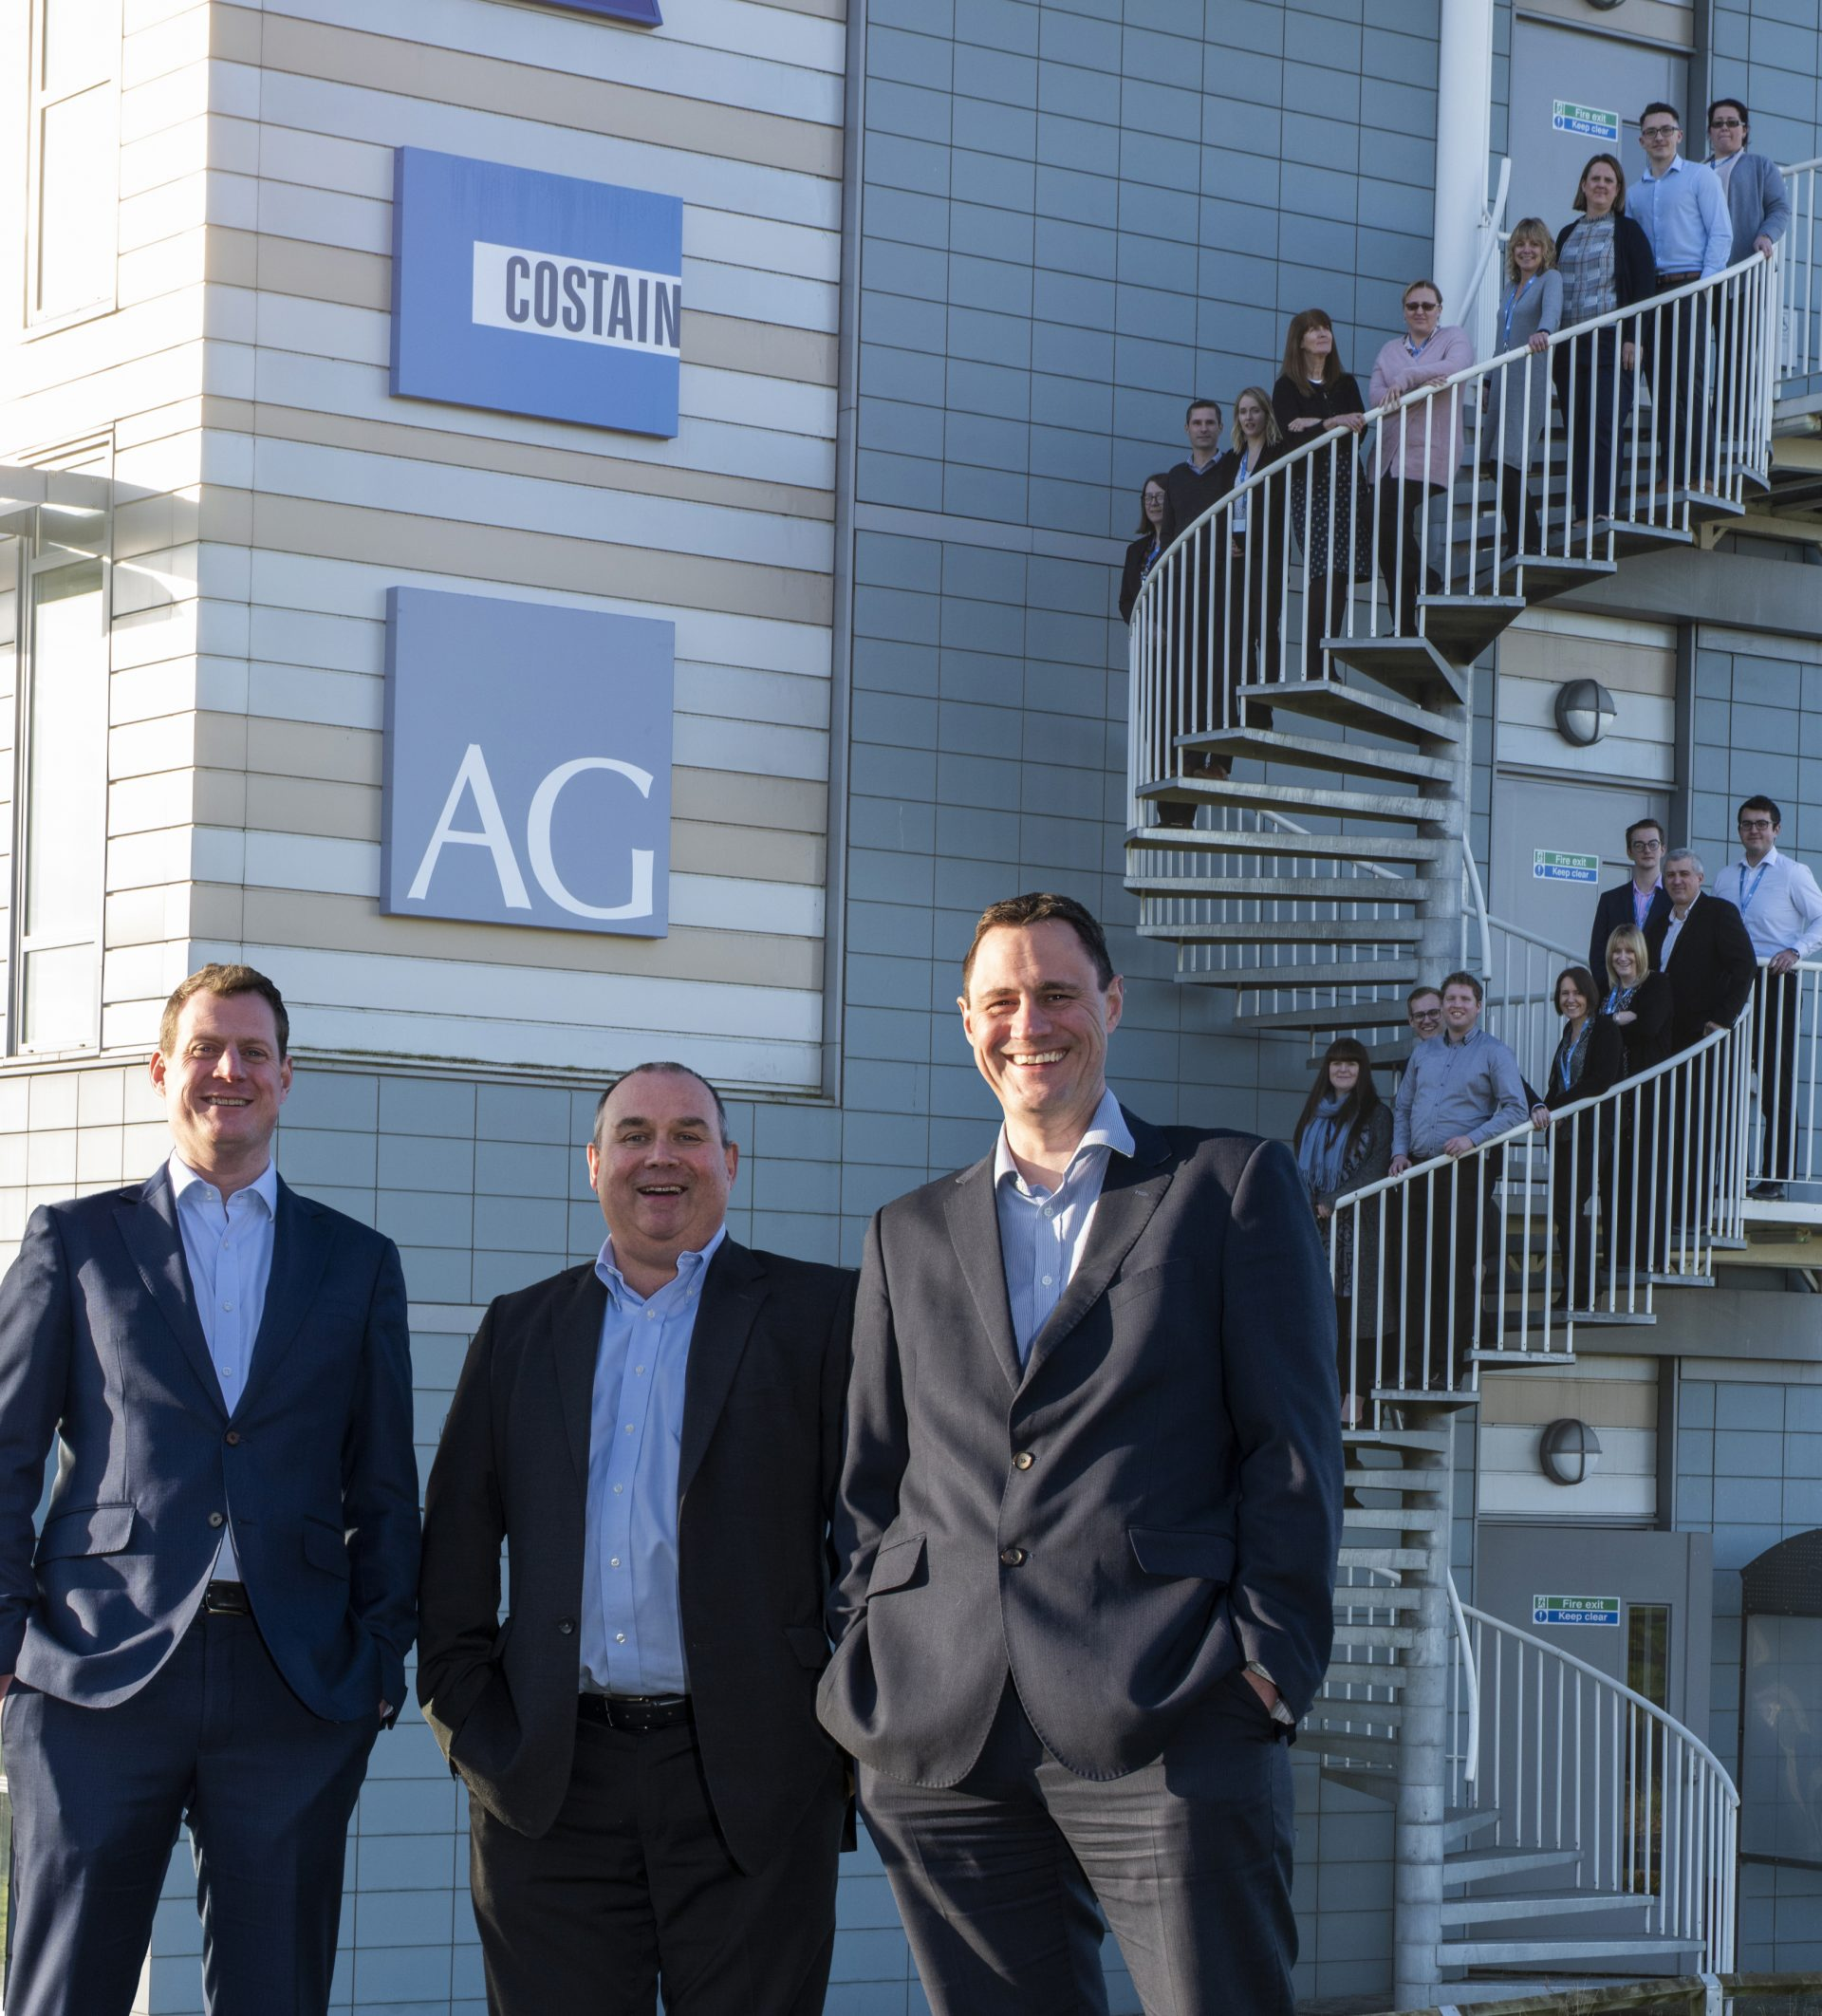 north somerset, south west england, new premises, new office, chartered accountants, Albert Goodman invest in new premises